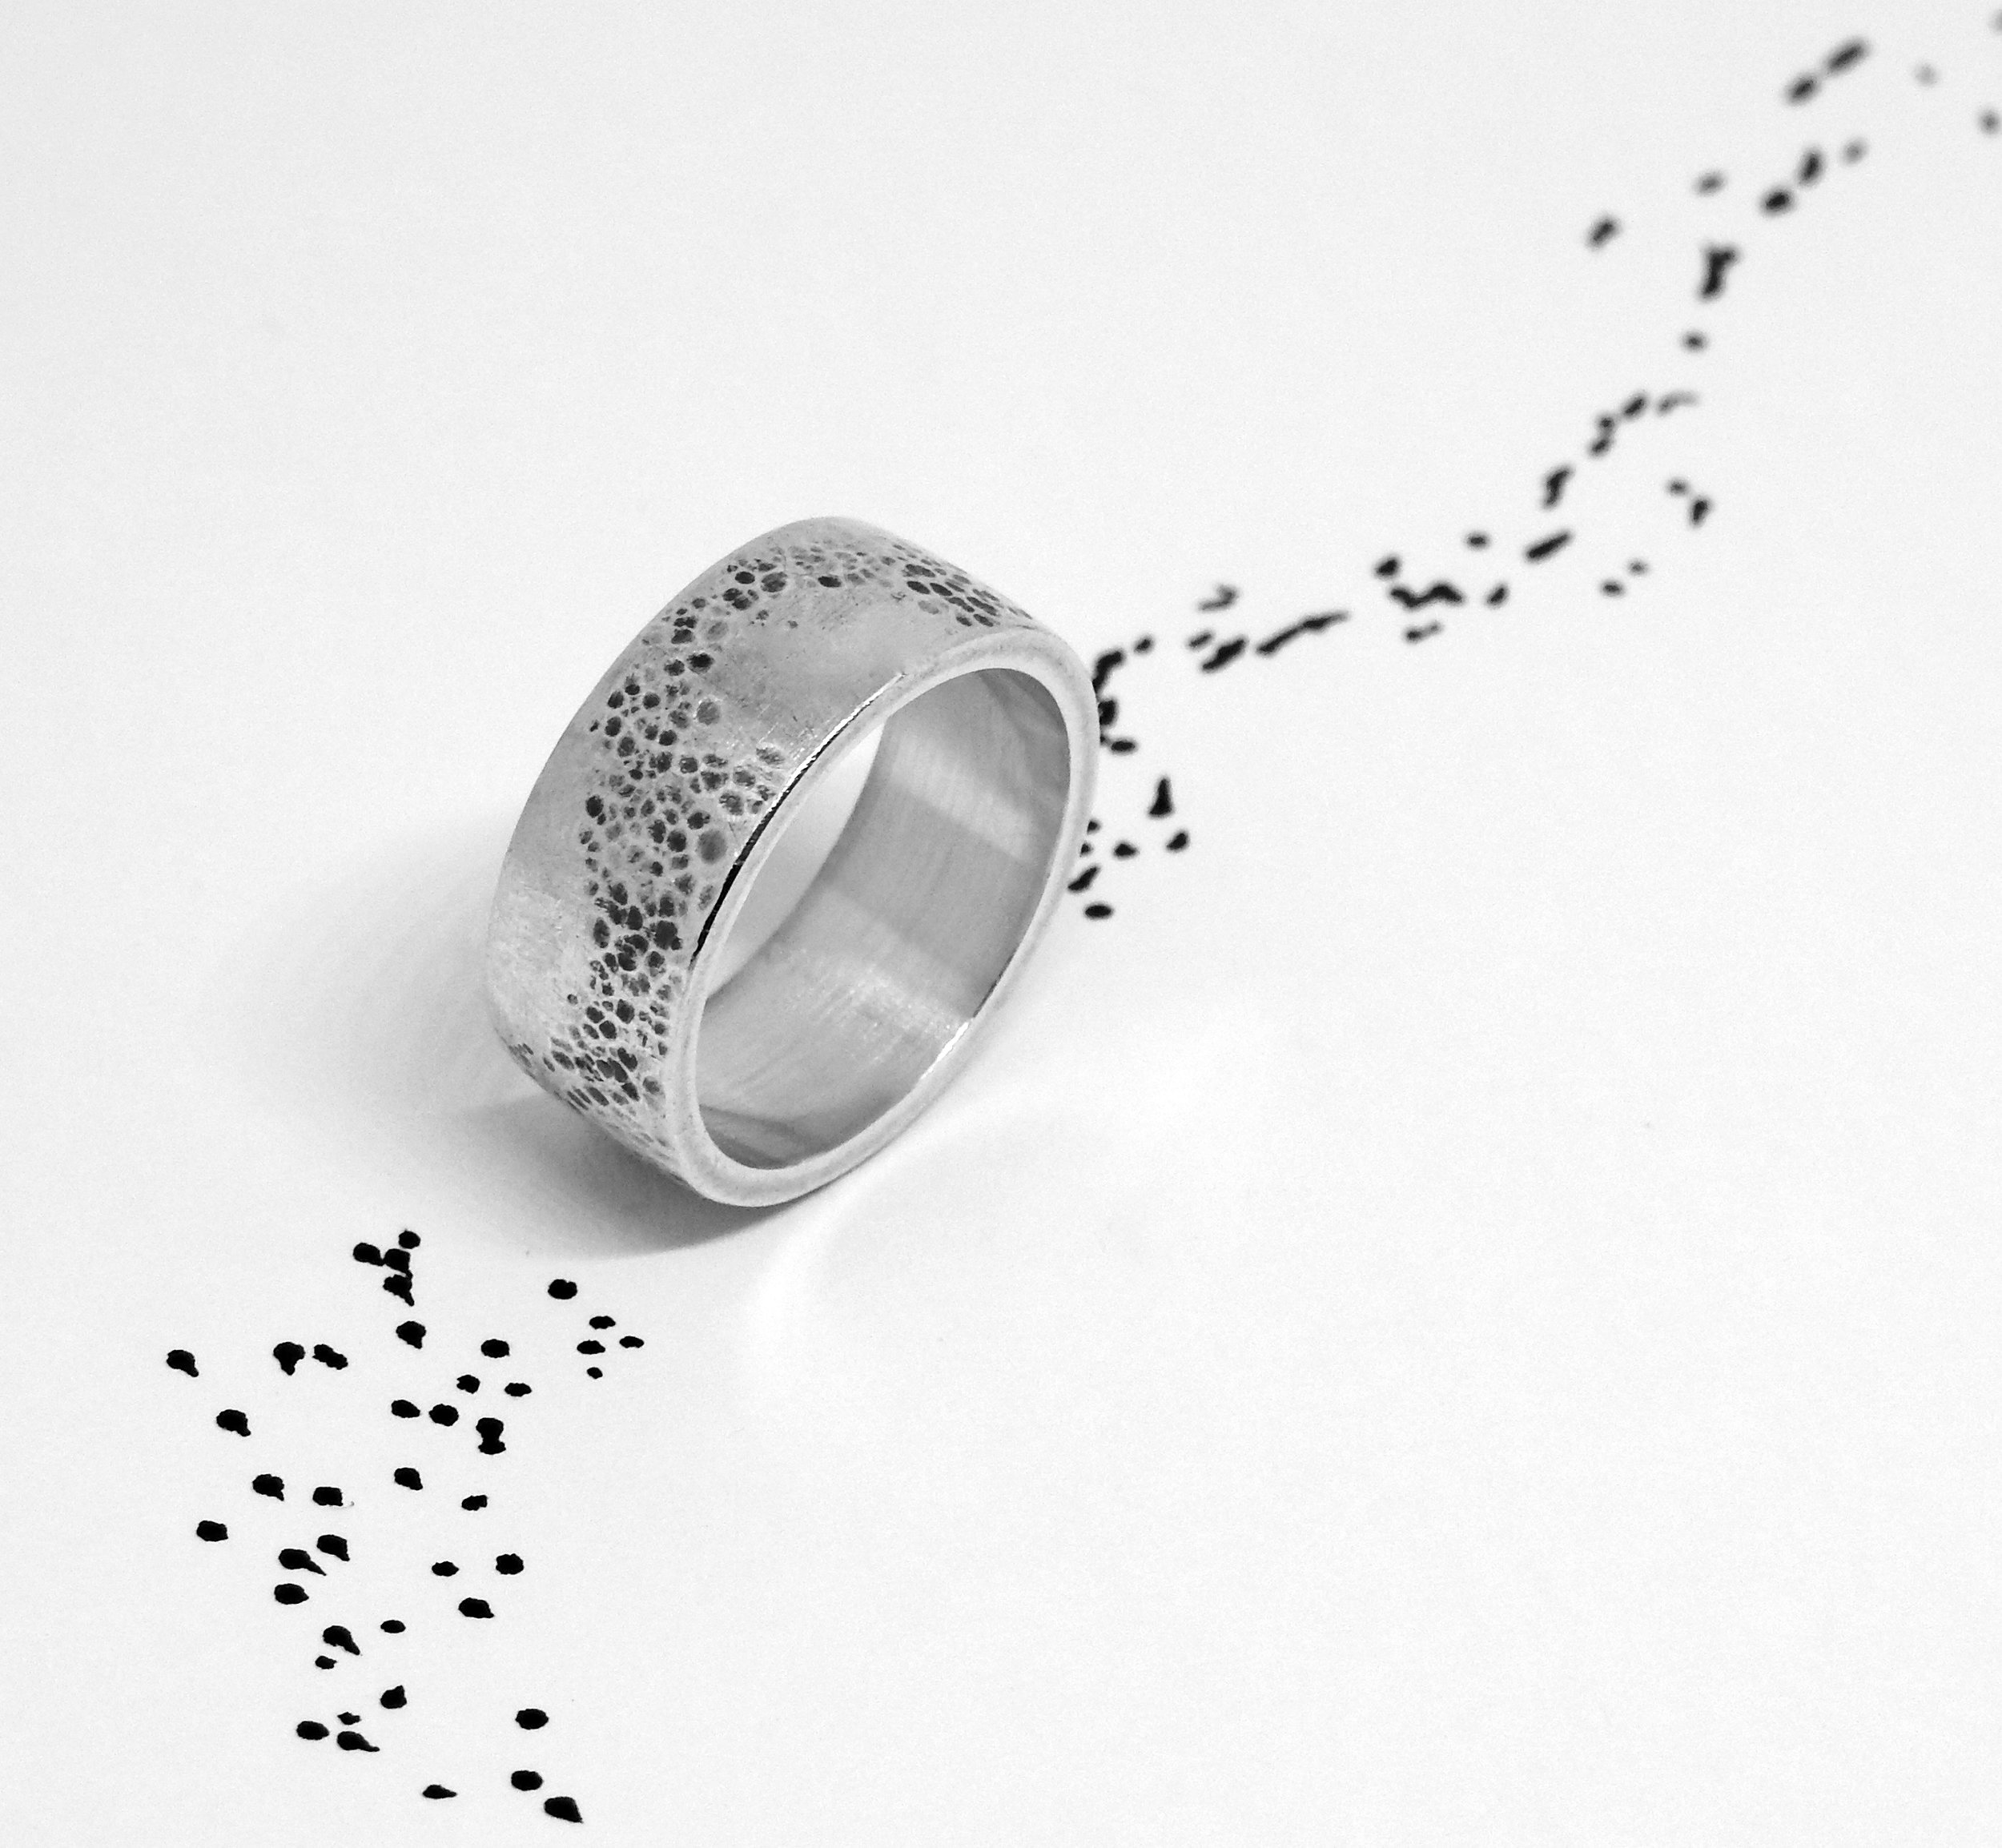 Ring (2018): Silver